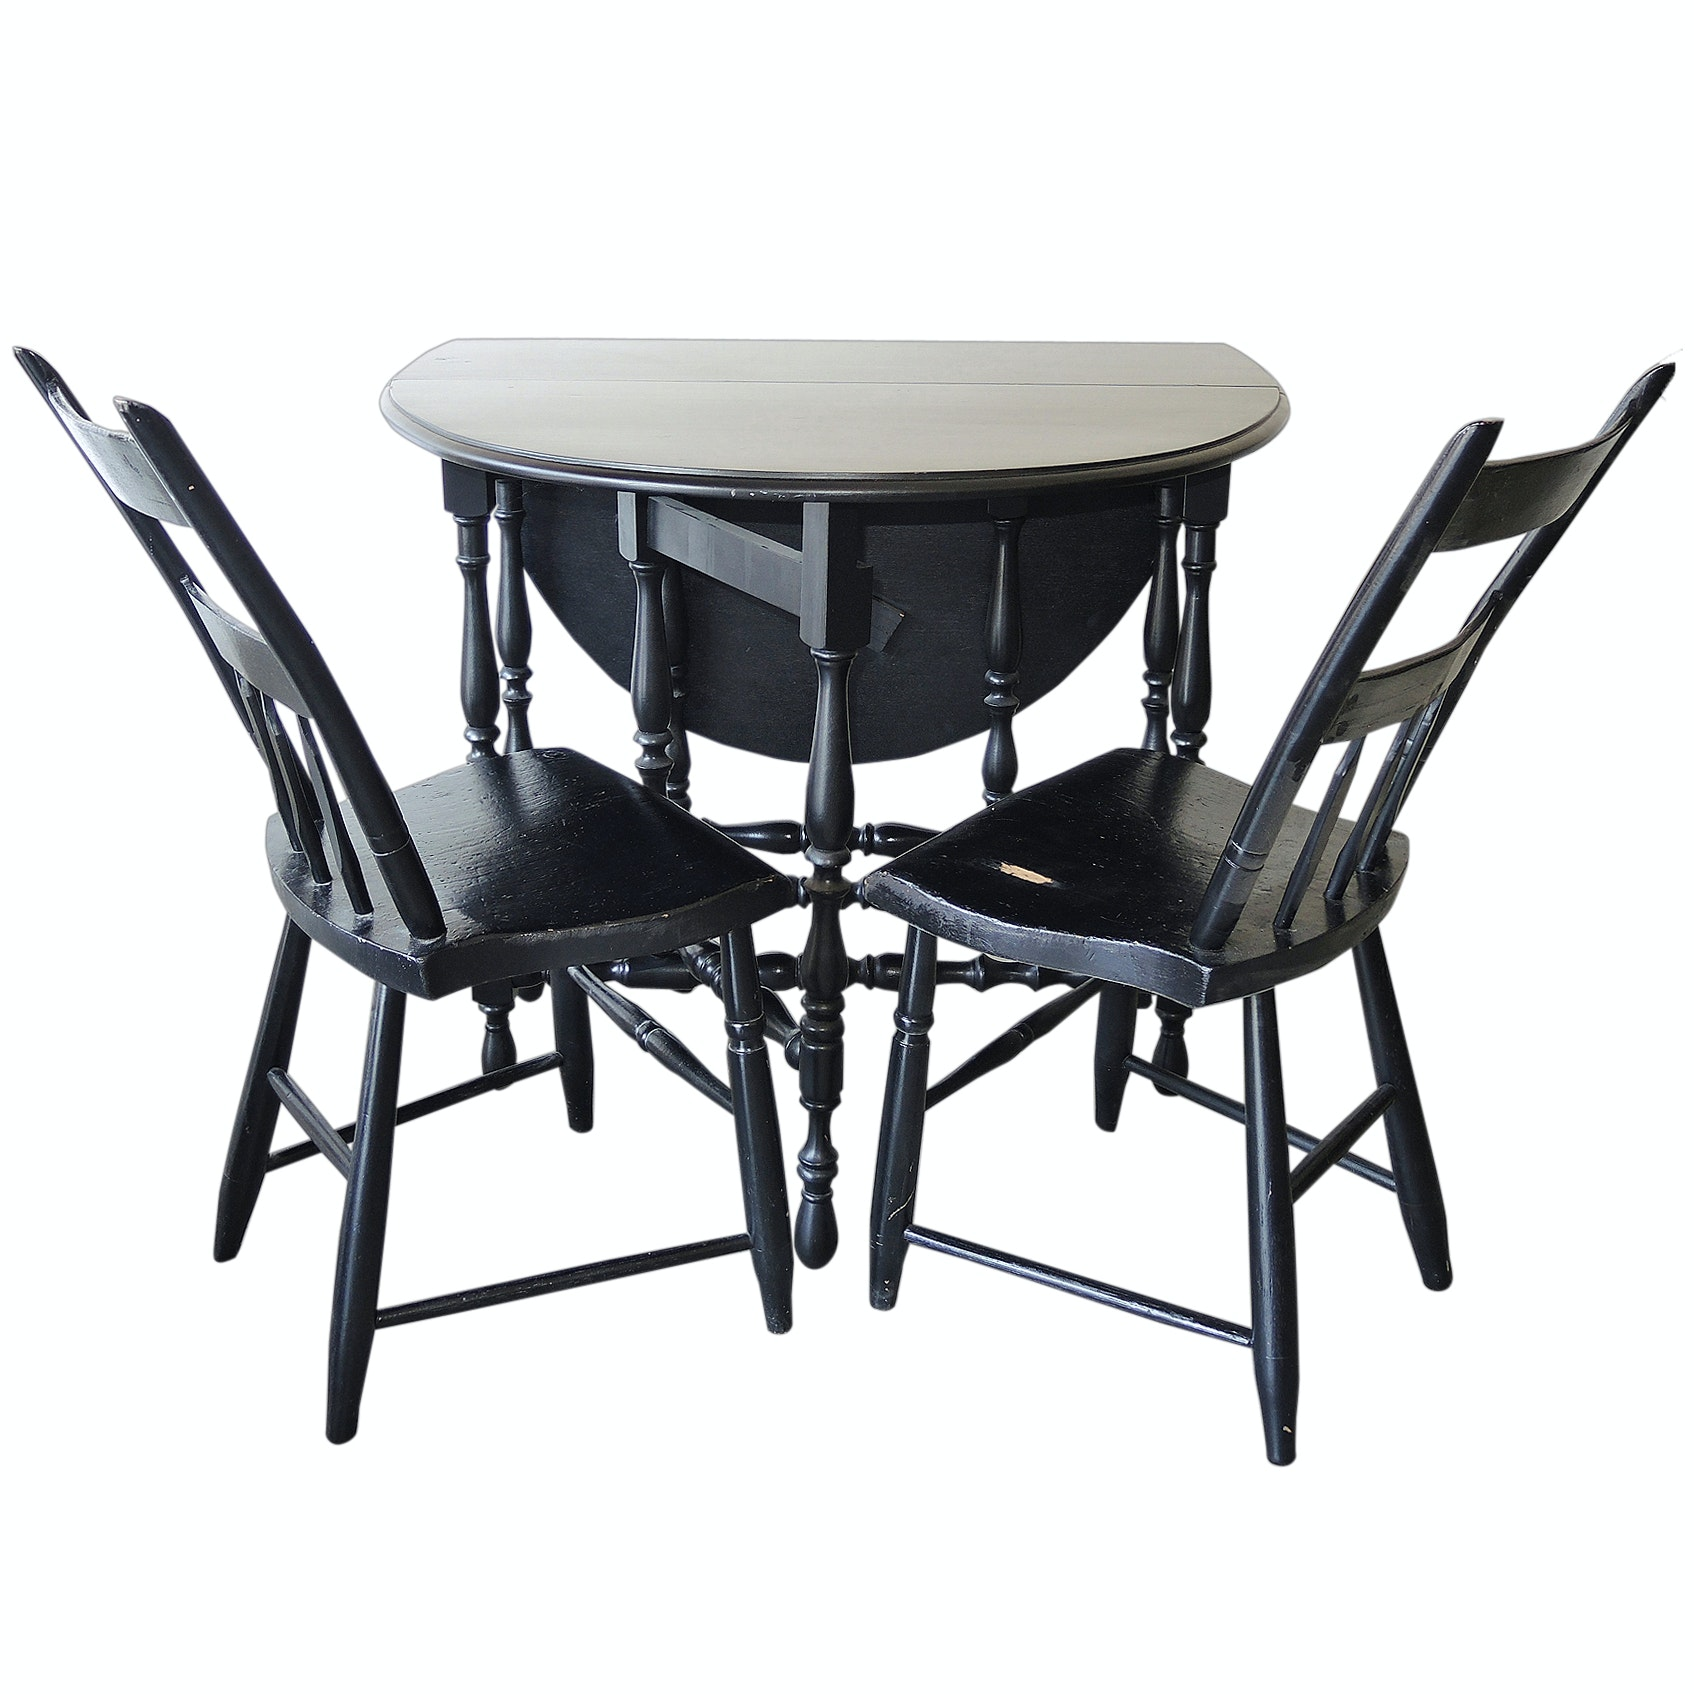 Oval Gate Leg Table with Two Chairs in Black